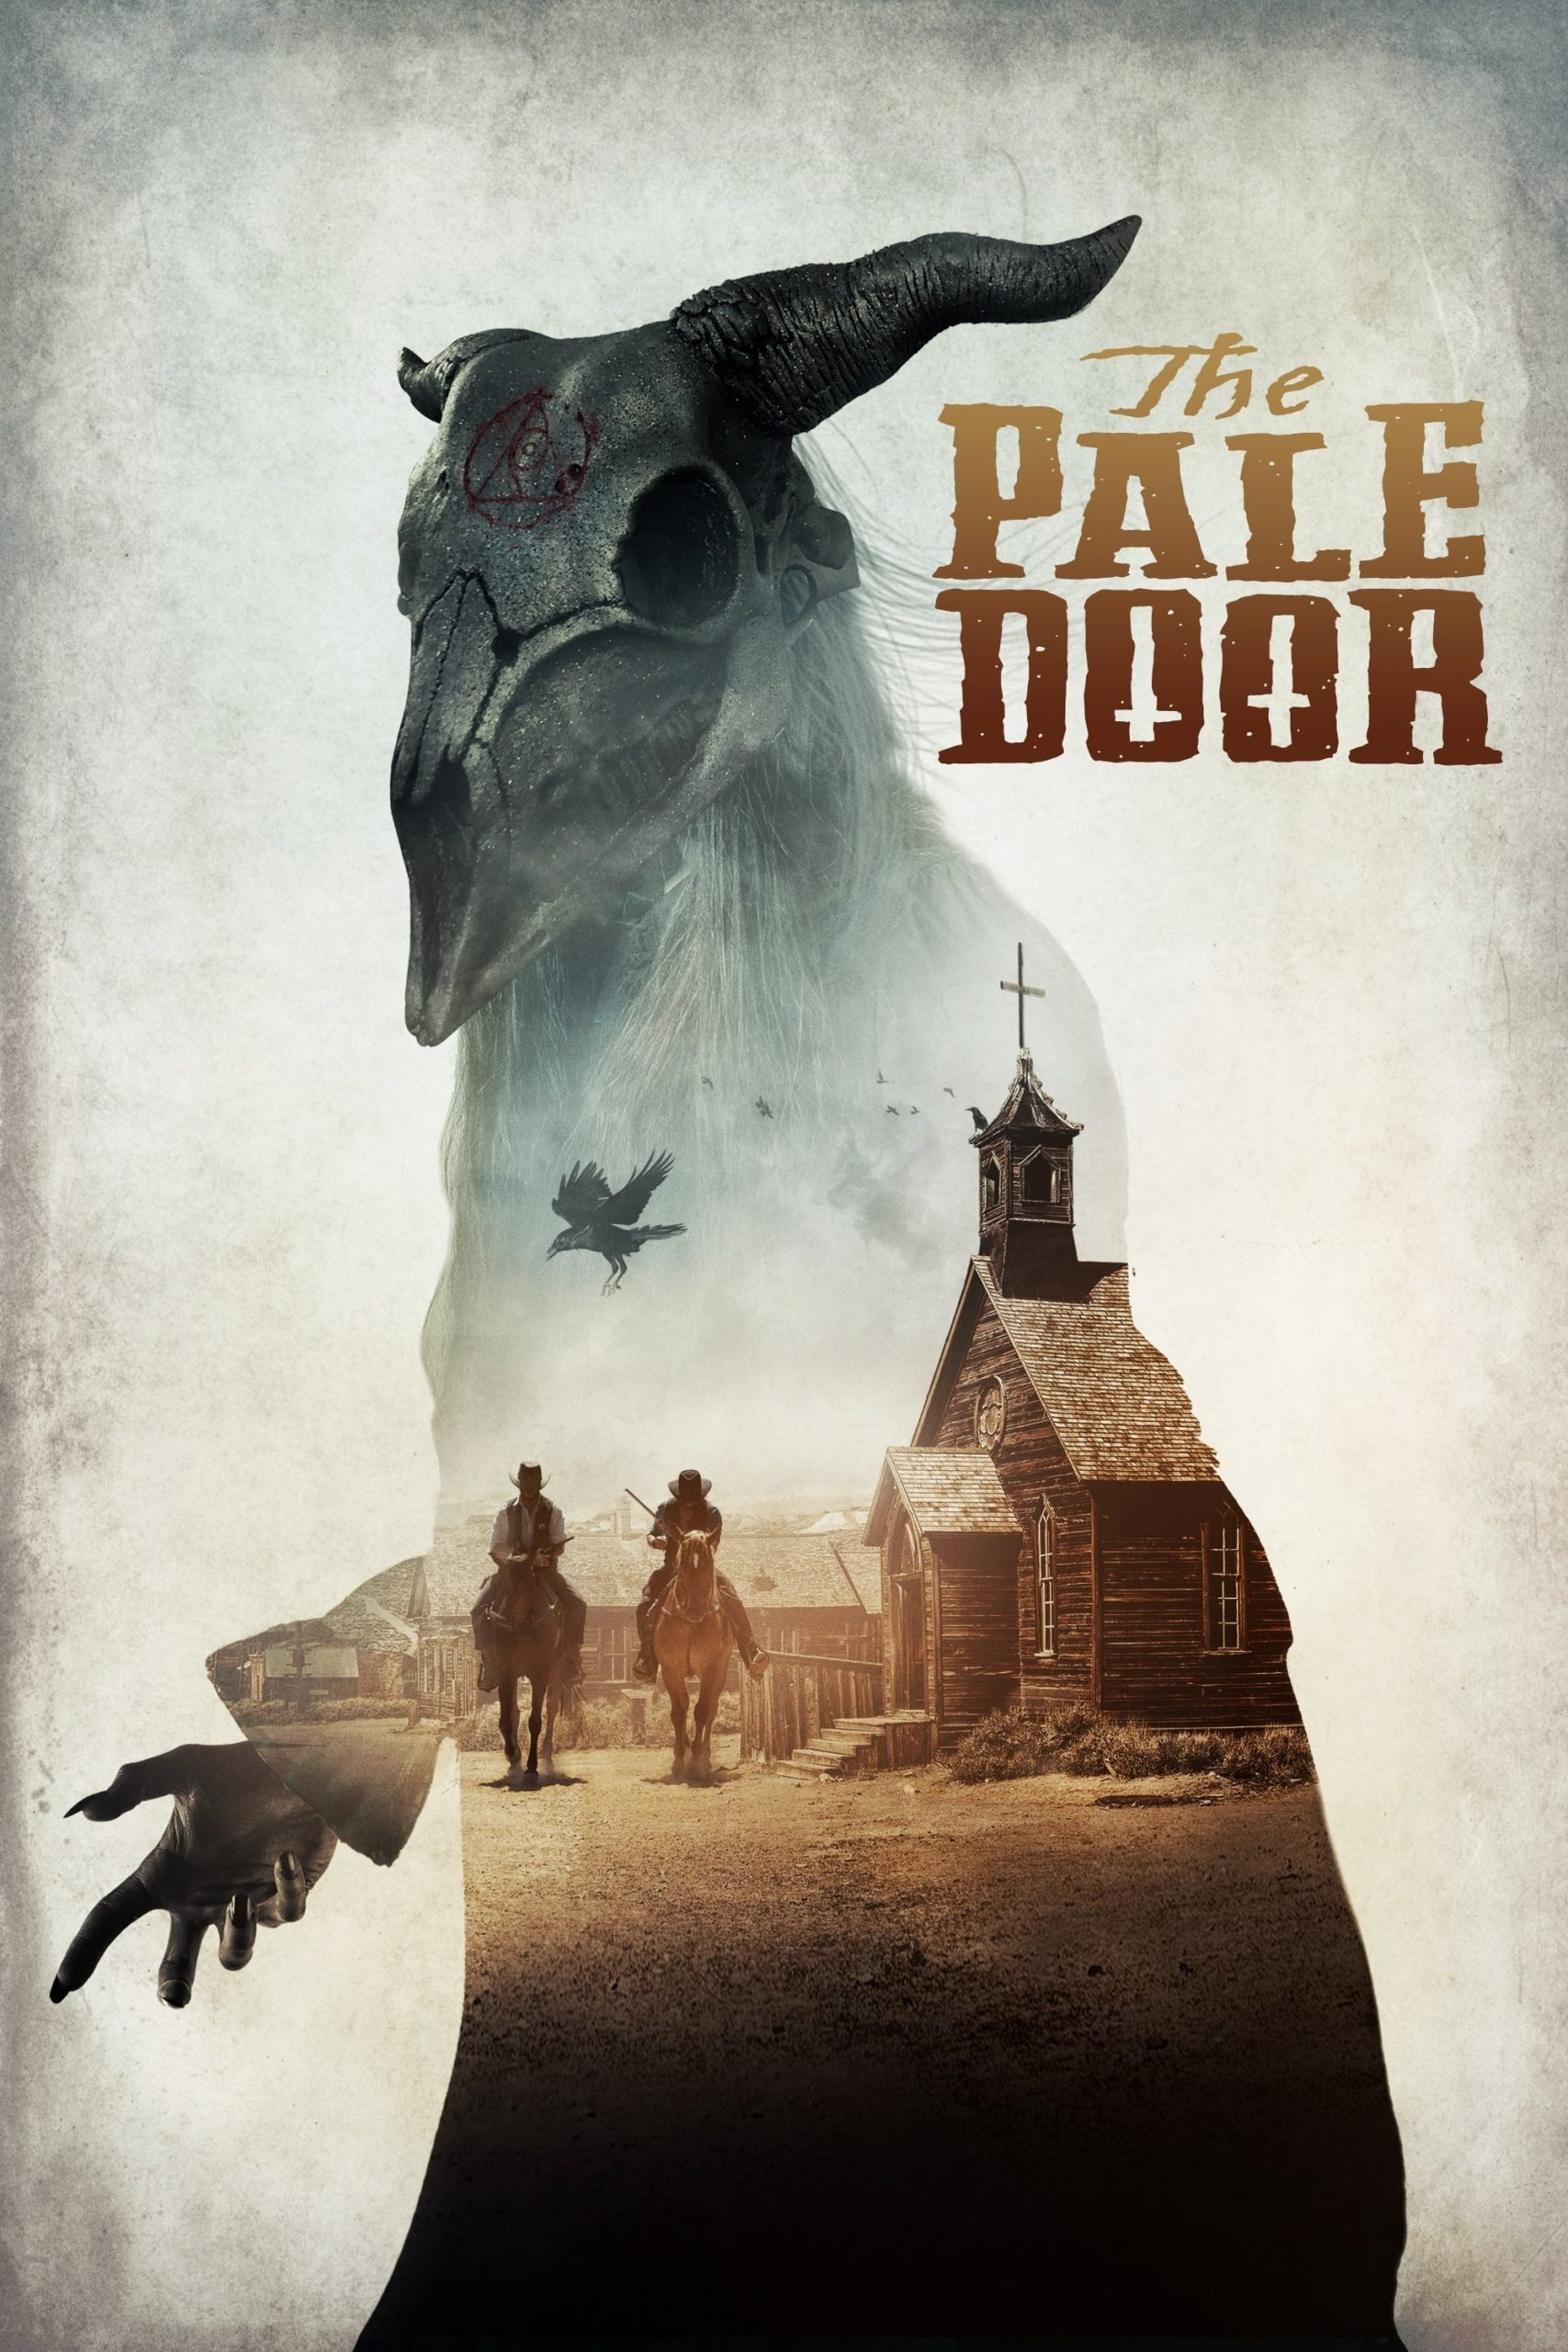 thumb The Pale Door